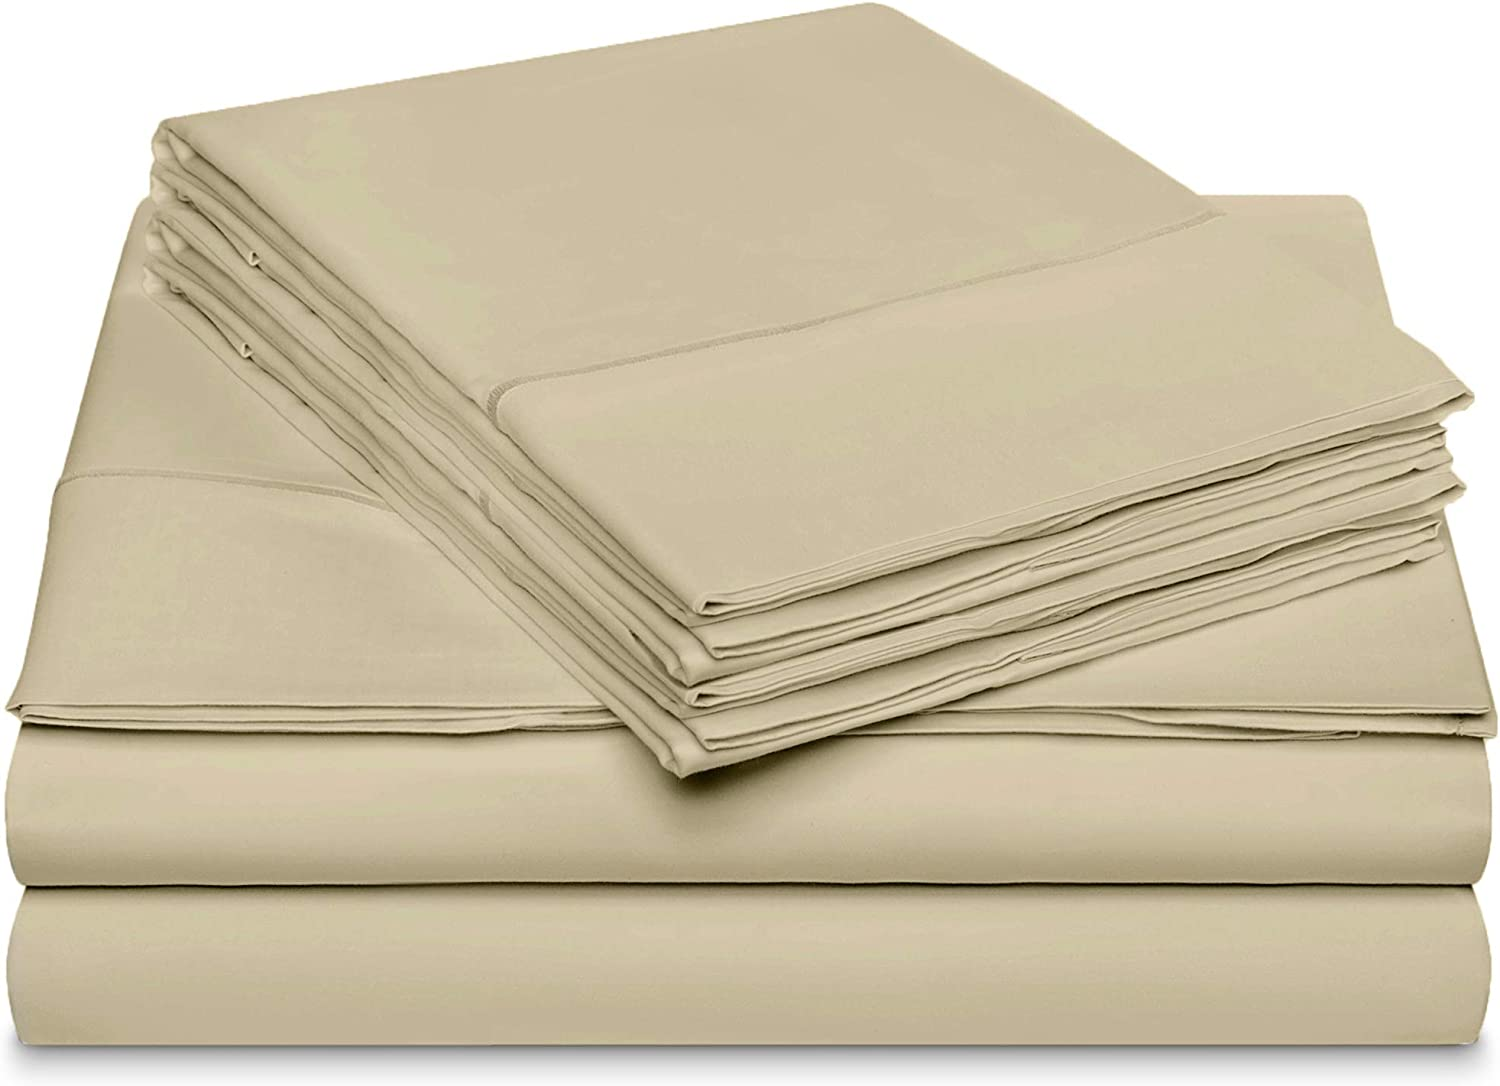 DREAM CASTLE 600 Thread Count 100% Cotton Sheet Set with Bonus Pillowcases,King Sheets, Smooth Sateen Weave, Deep Pockets, Luxury Bedding, King Sheets 6 Piece Set with Marrow Hem,Latte New